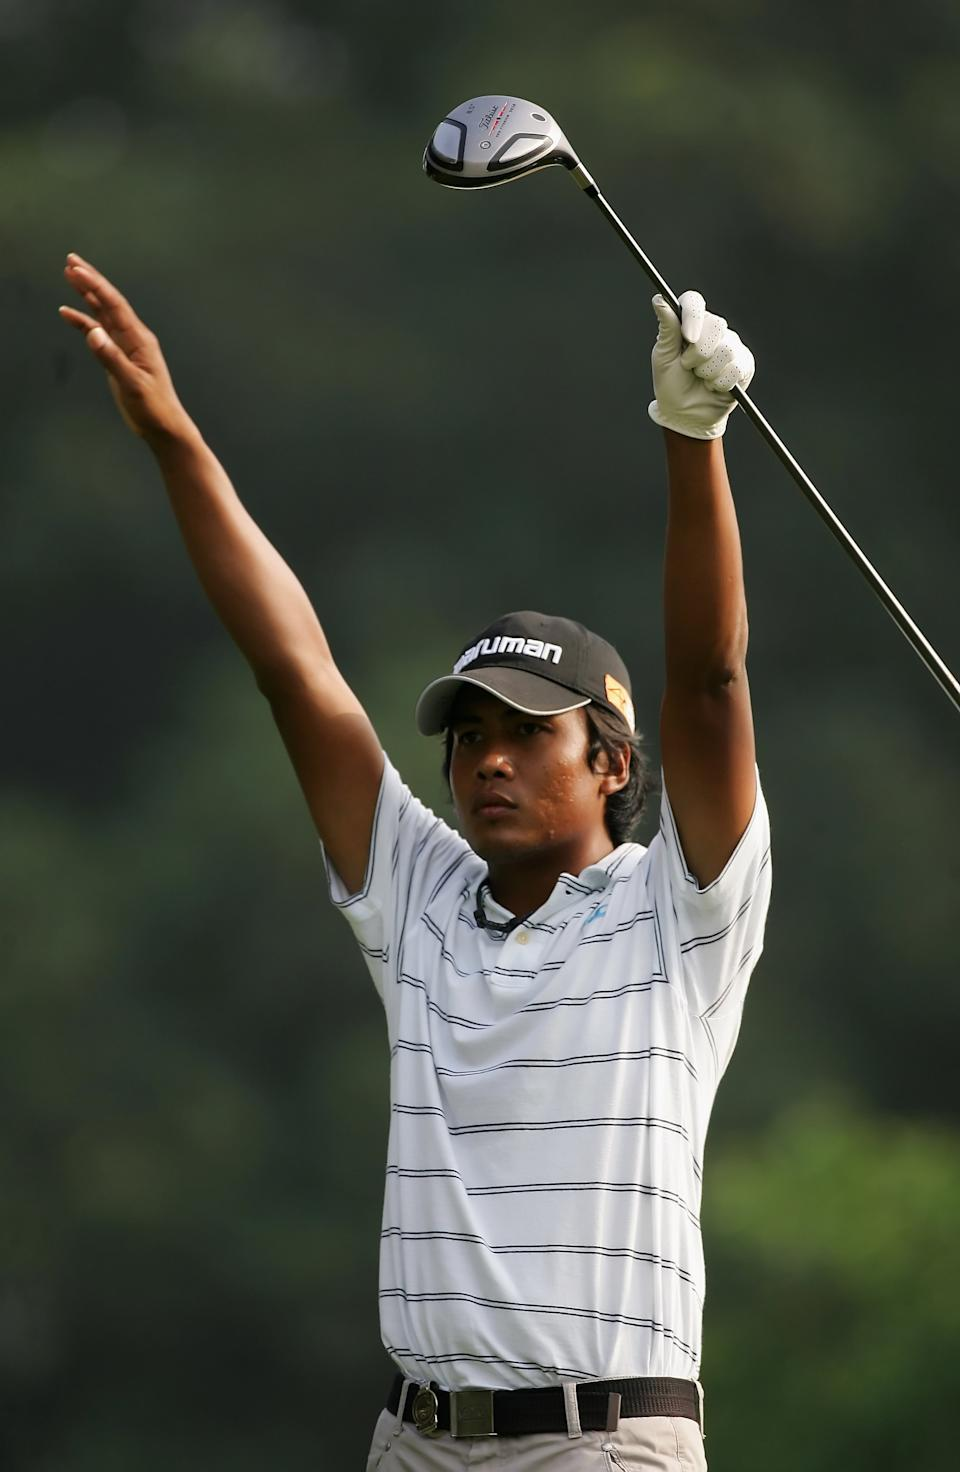 FANLING, HONG KONG - NOVEMBER 18:  Juvic Pagunsan of The Philippines gestures on the 13th hole during the third round of the UBS Hong Kong Open at the Hong Kong Golf Club on November 18, 2006 in Fanling, Hong Kong.  (Photo by Stuart Franklin/Getty Images)